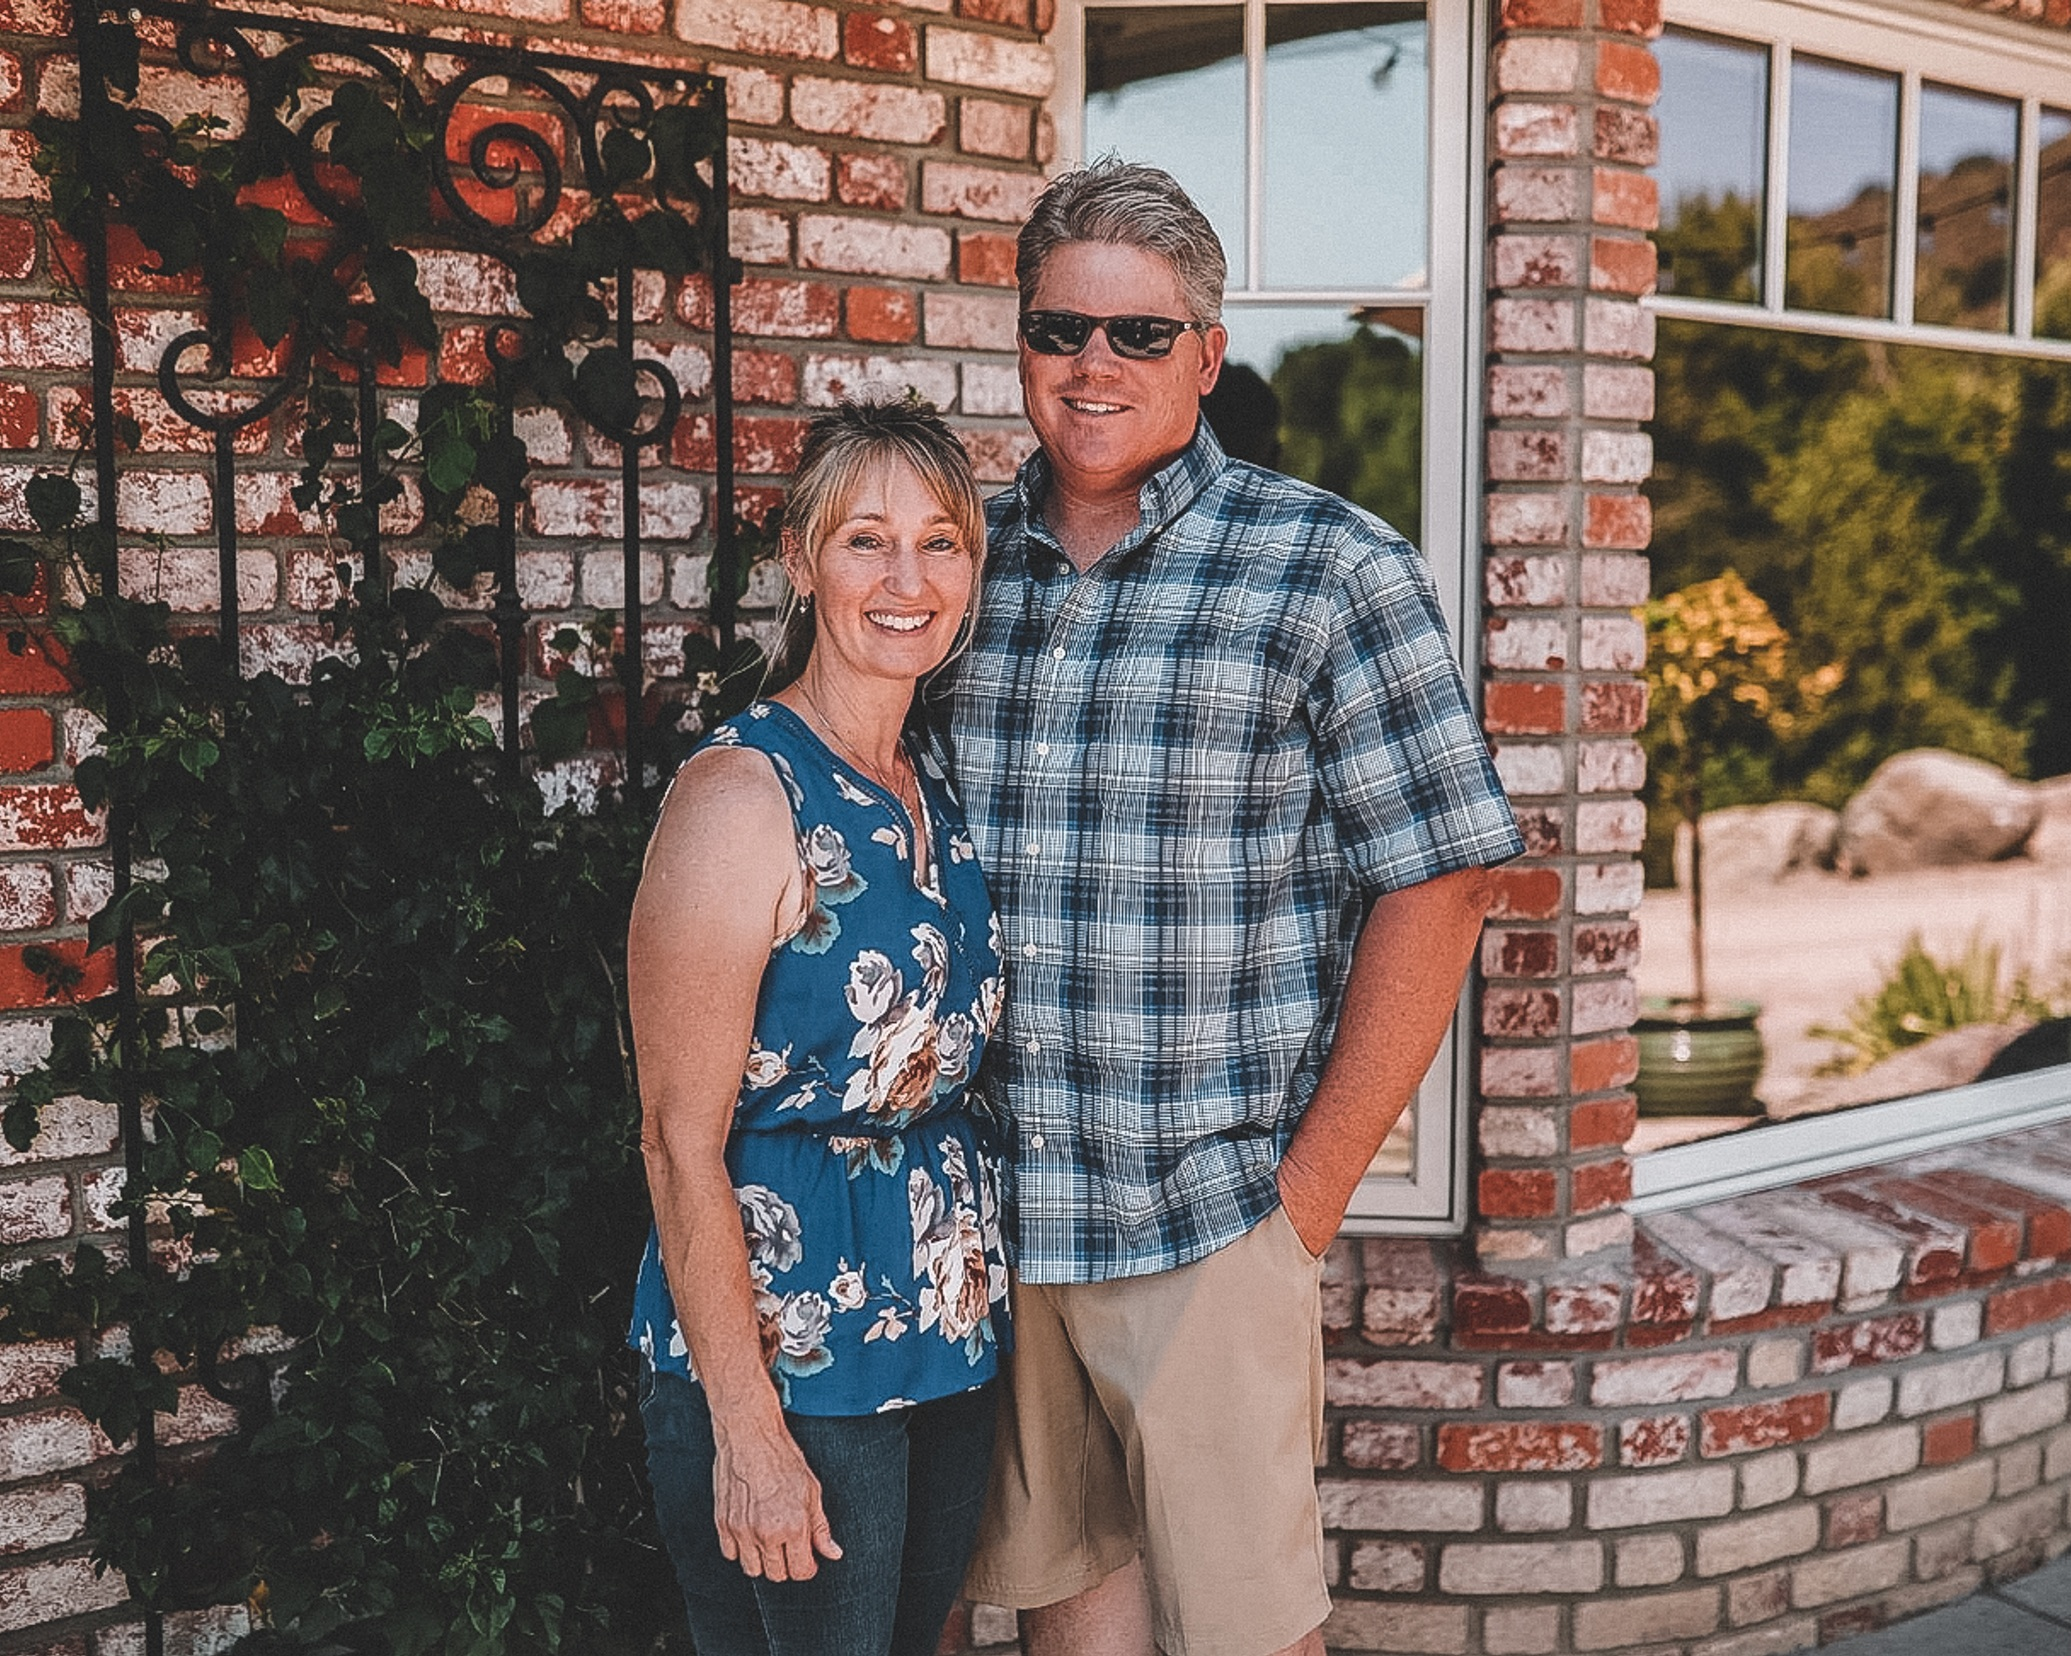 MEET JON & ALANA - They heard the need for building a church in Bangladesh.They provided the funds to build it!The following is a letter from our brothers and sisters in Bangladesh to Jon & Alana: